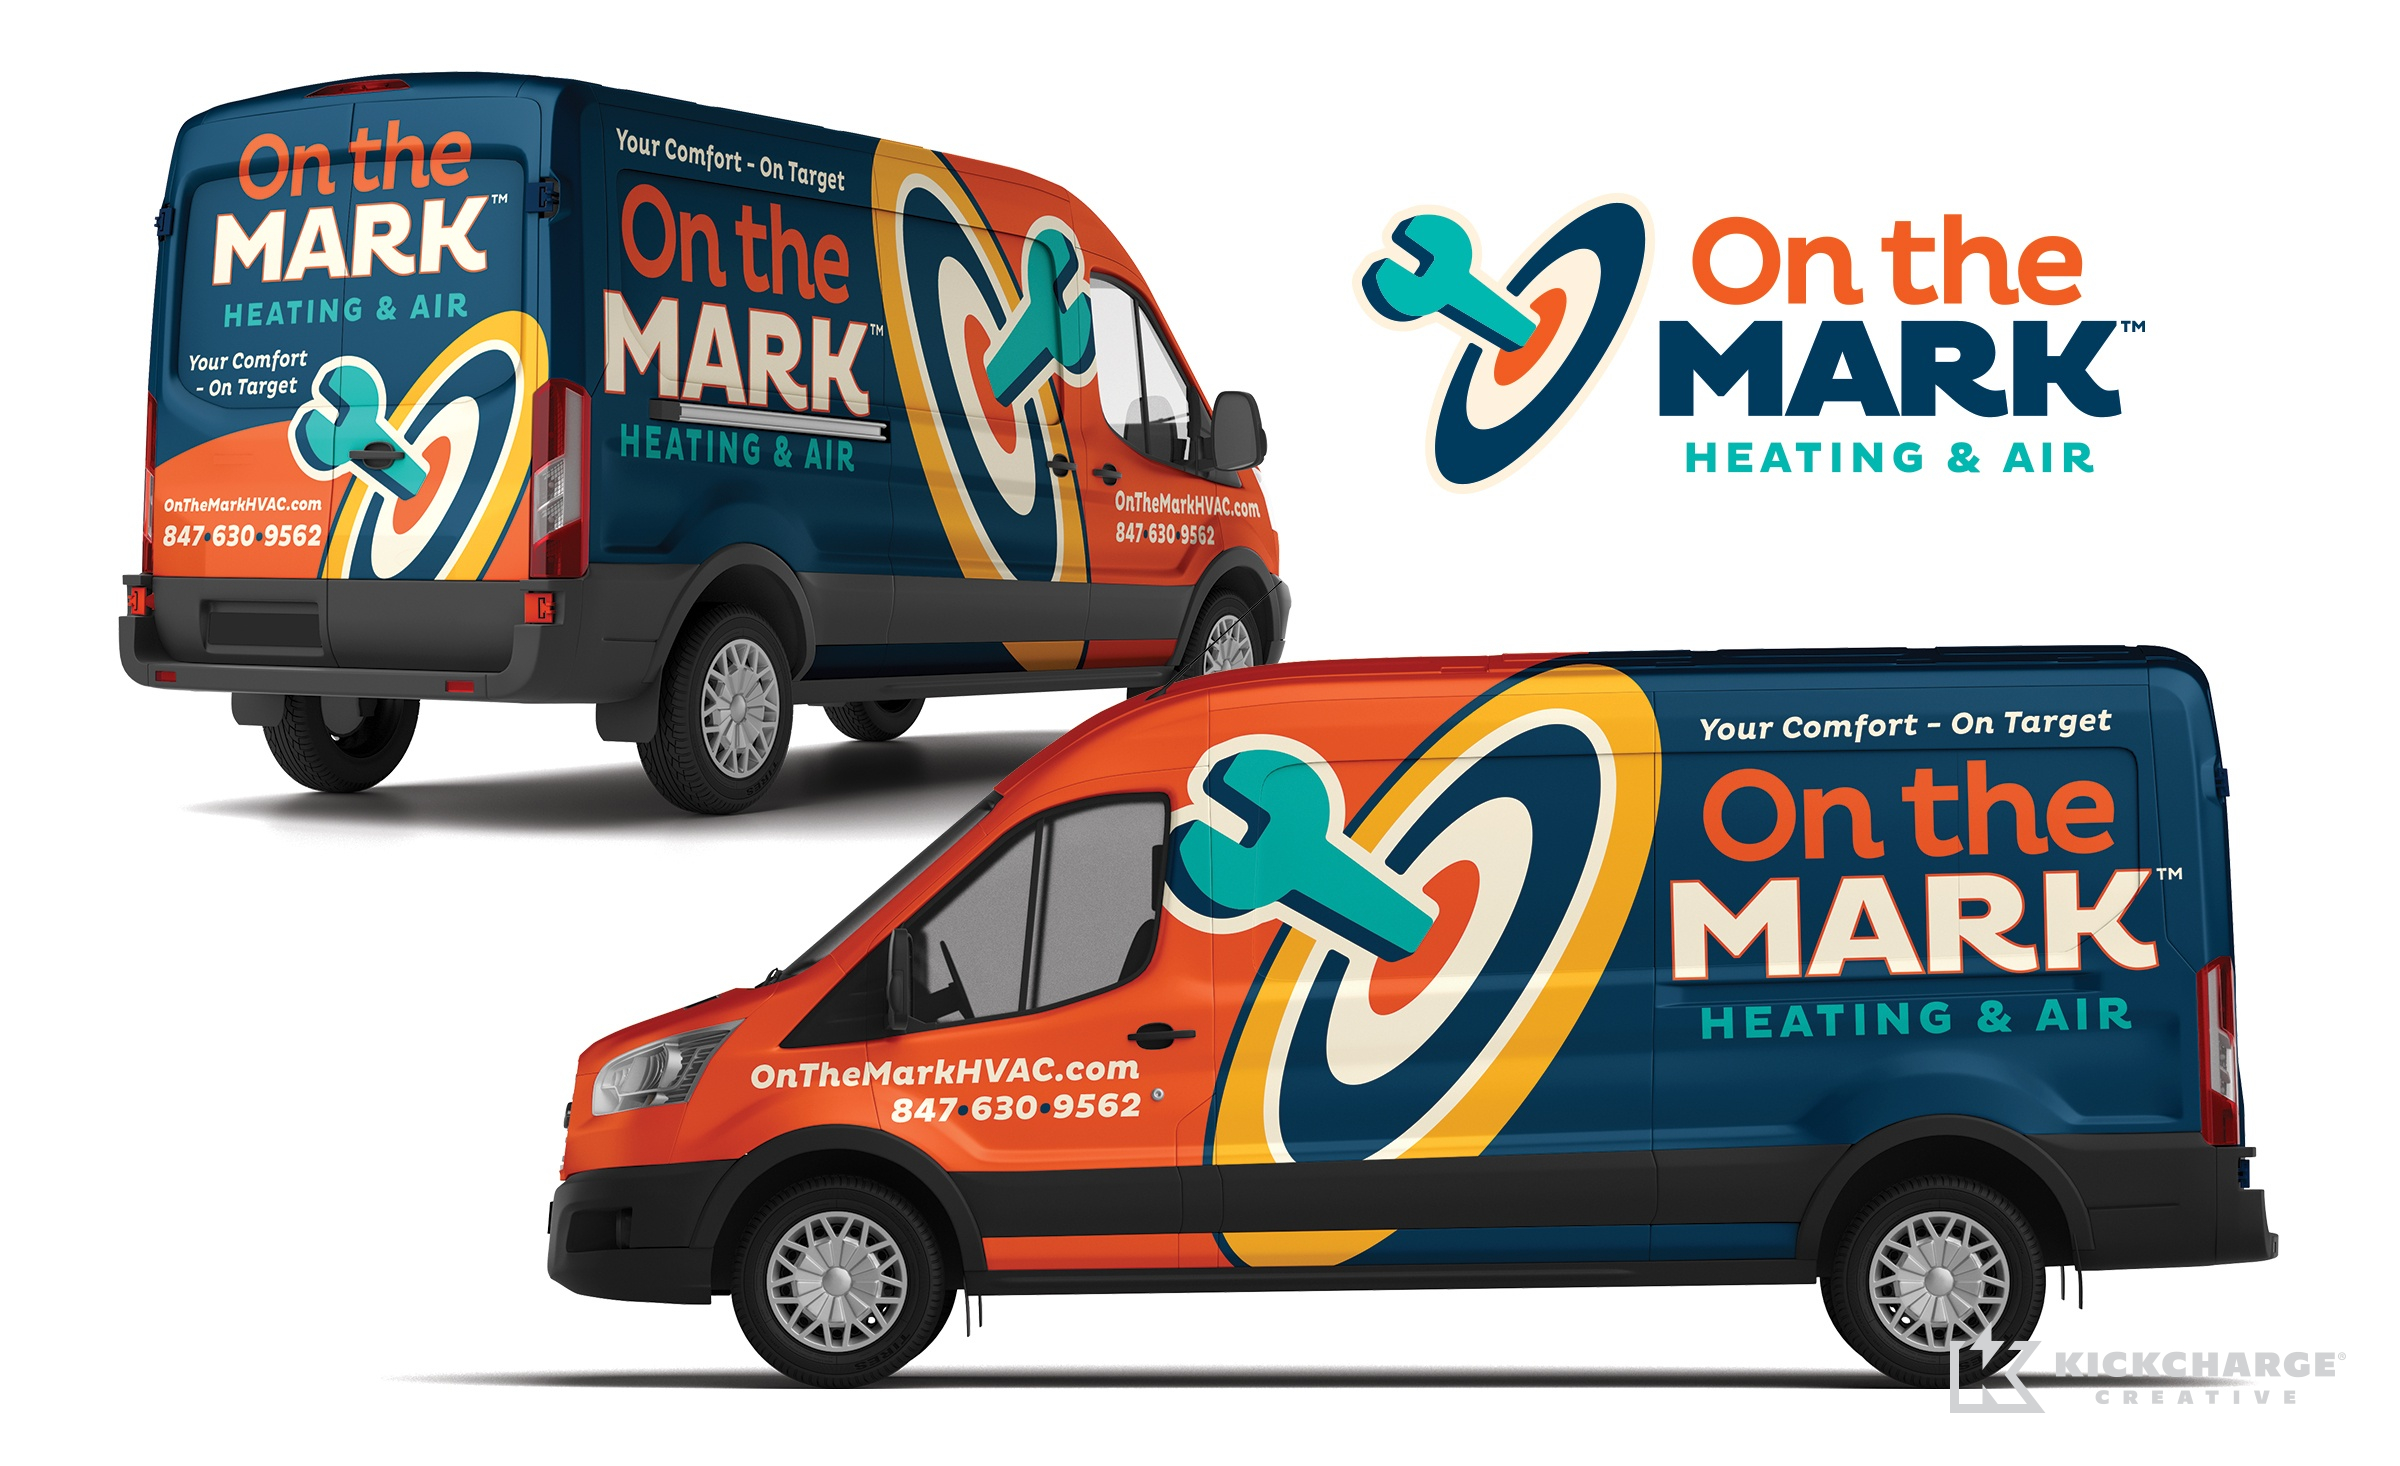 On the Mark Heating & Air